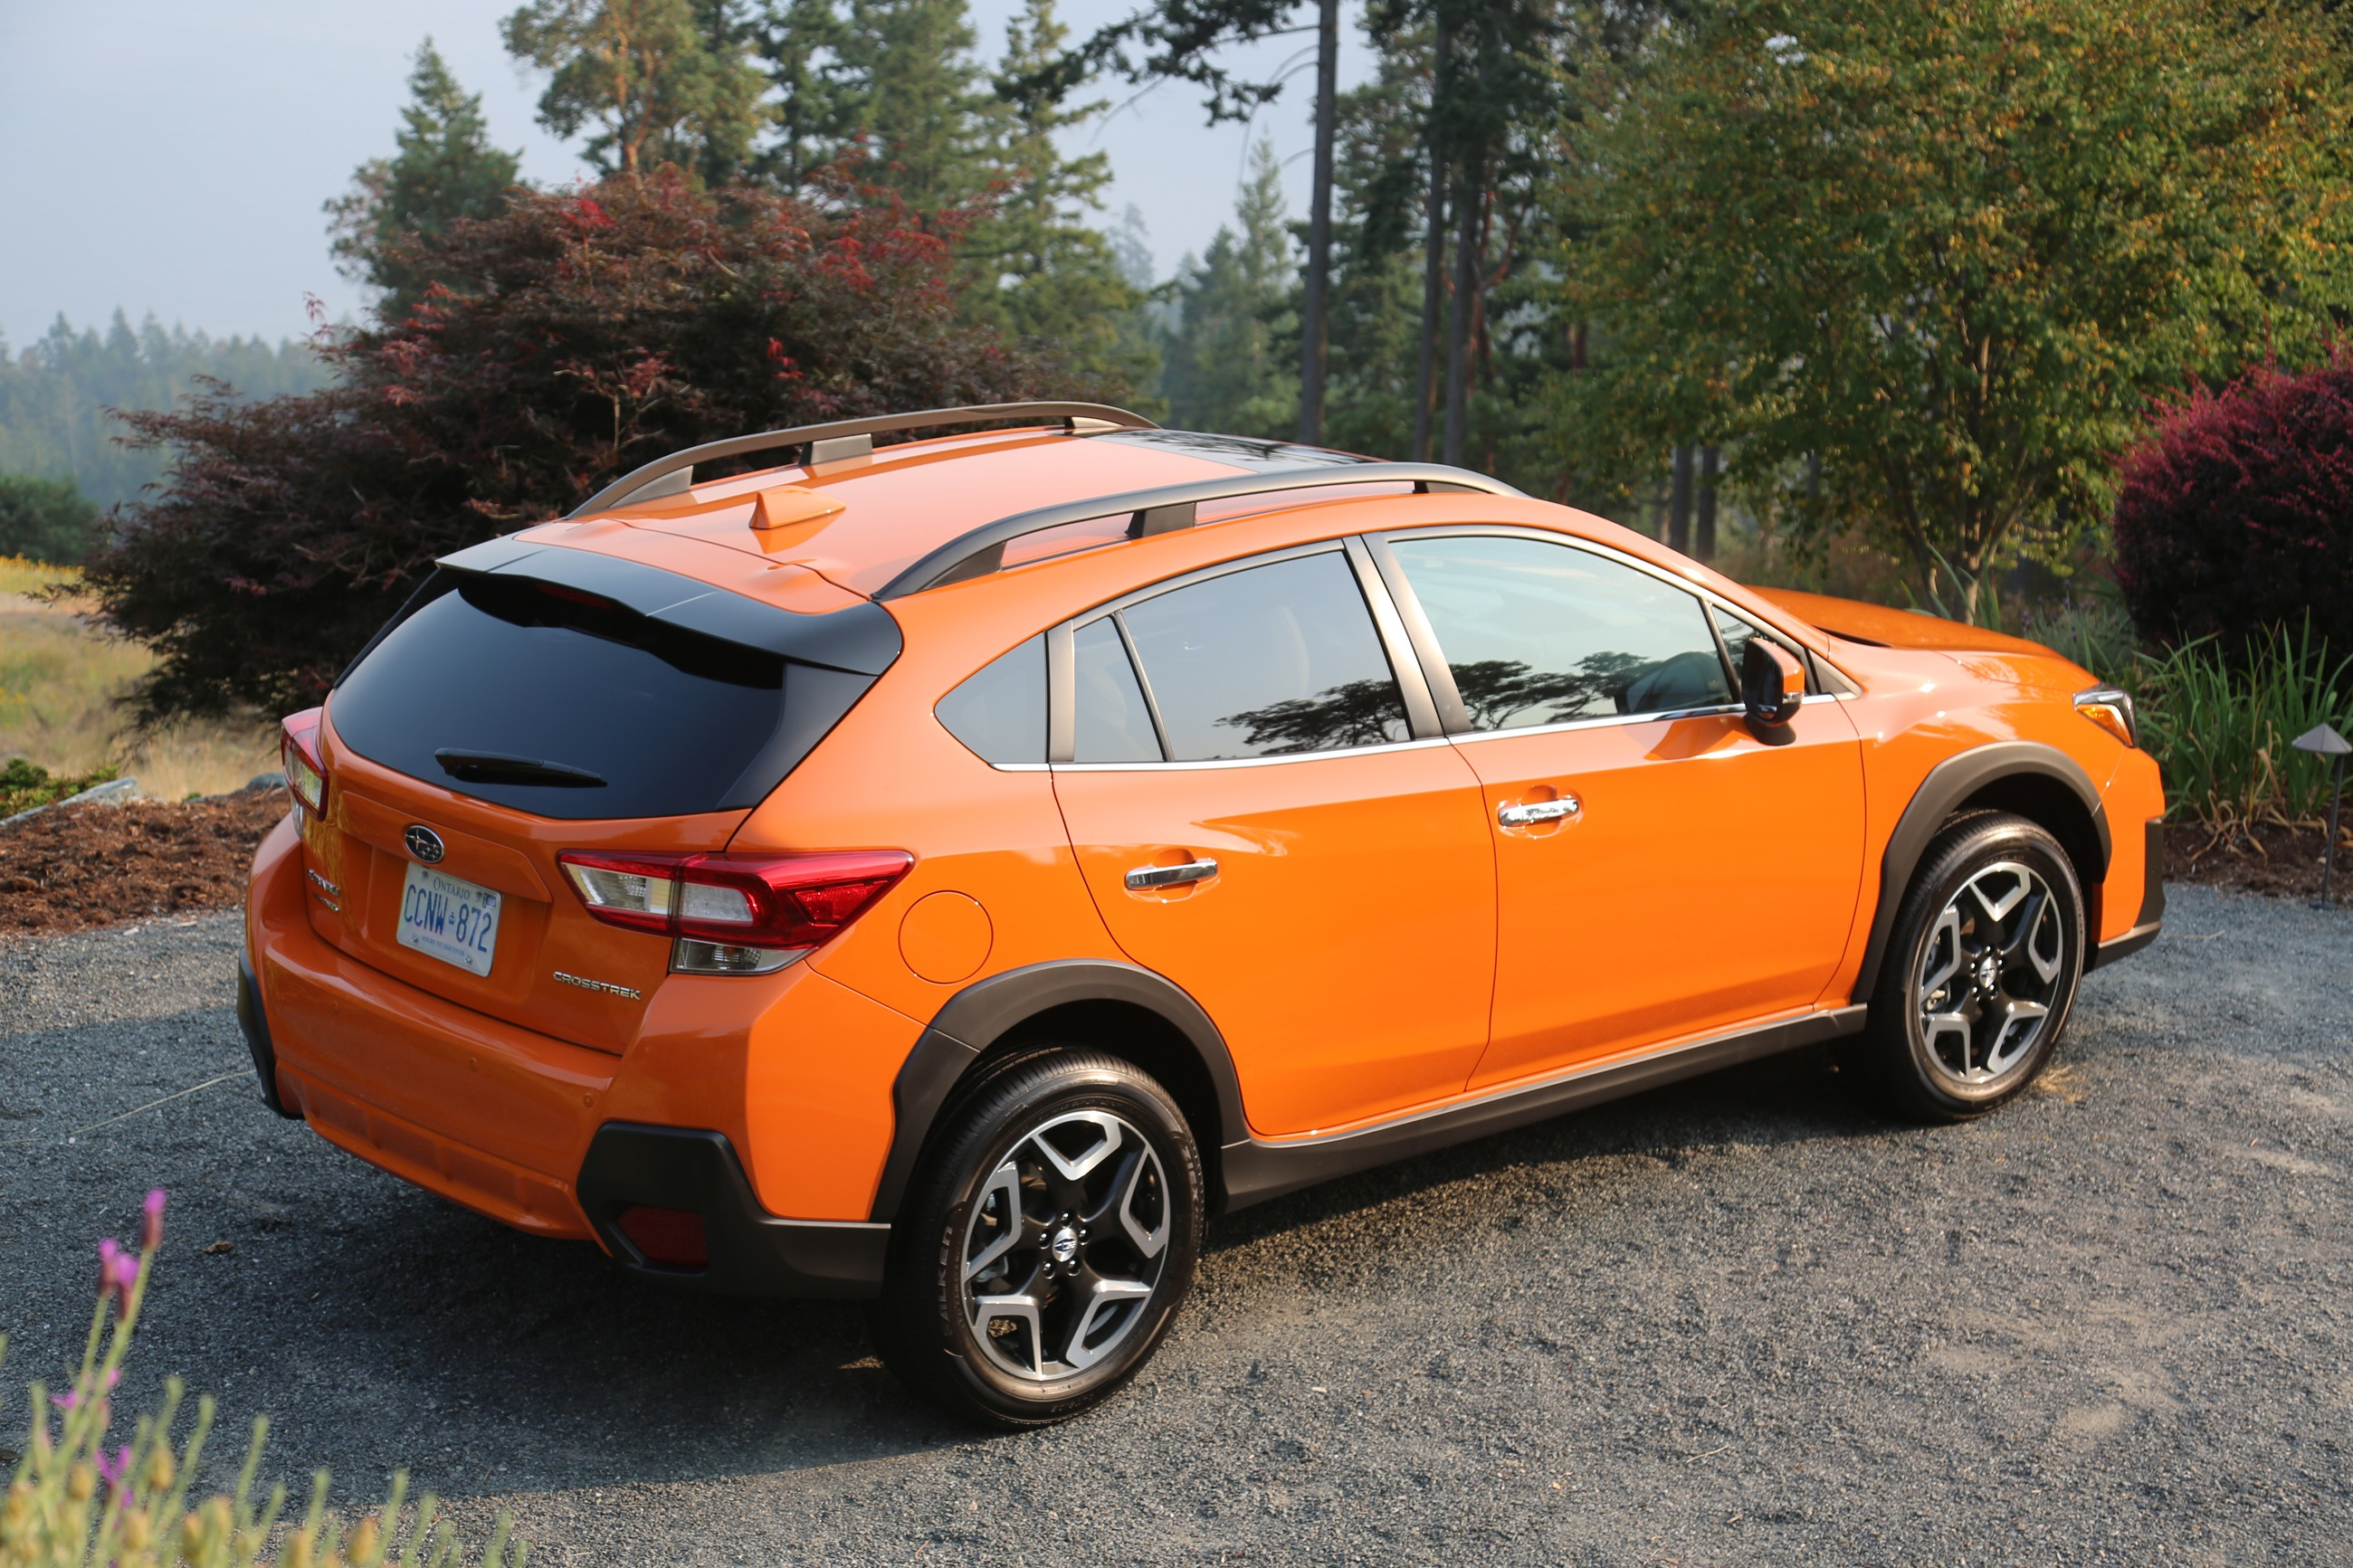 2018 subaru crosstrek. simple crosstrek 2018subarucrosstrekreviewbc3 and 2018 subaru crosstrek u